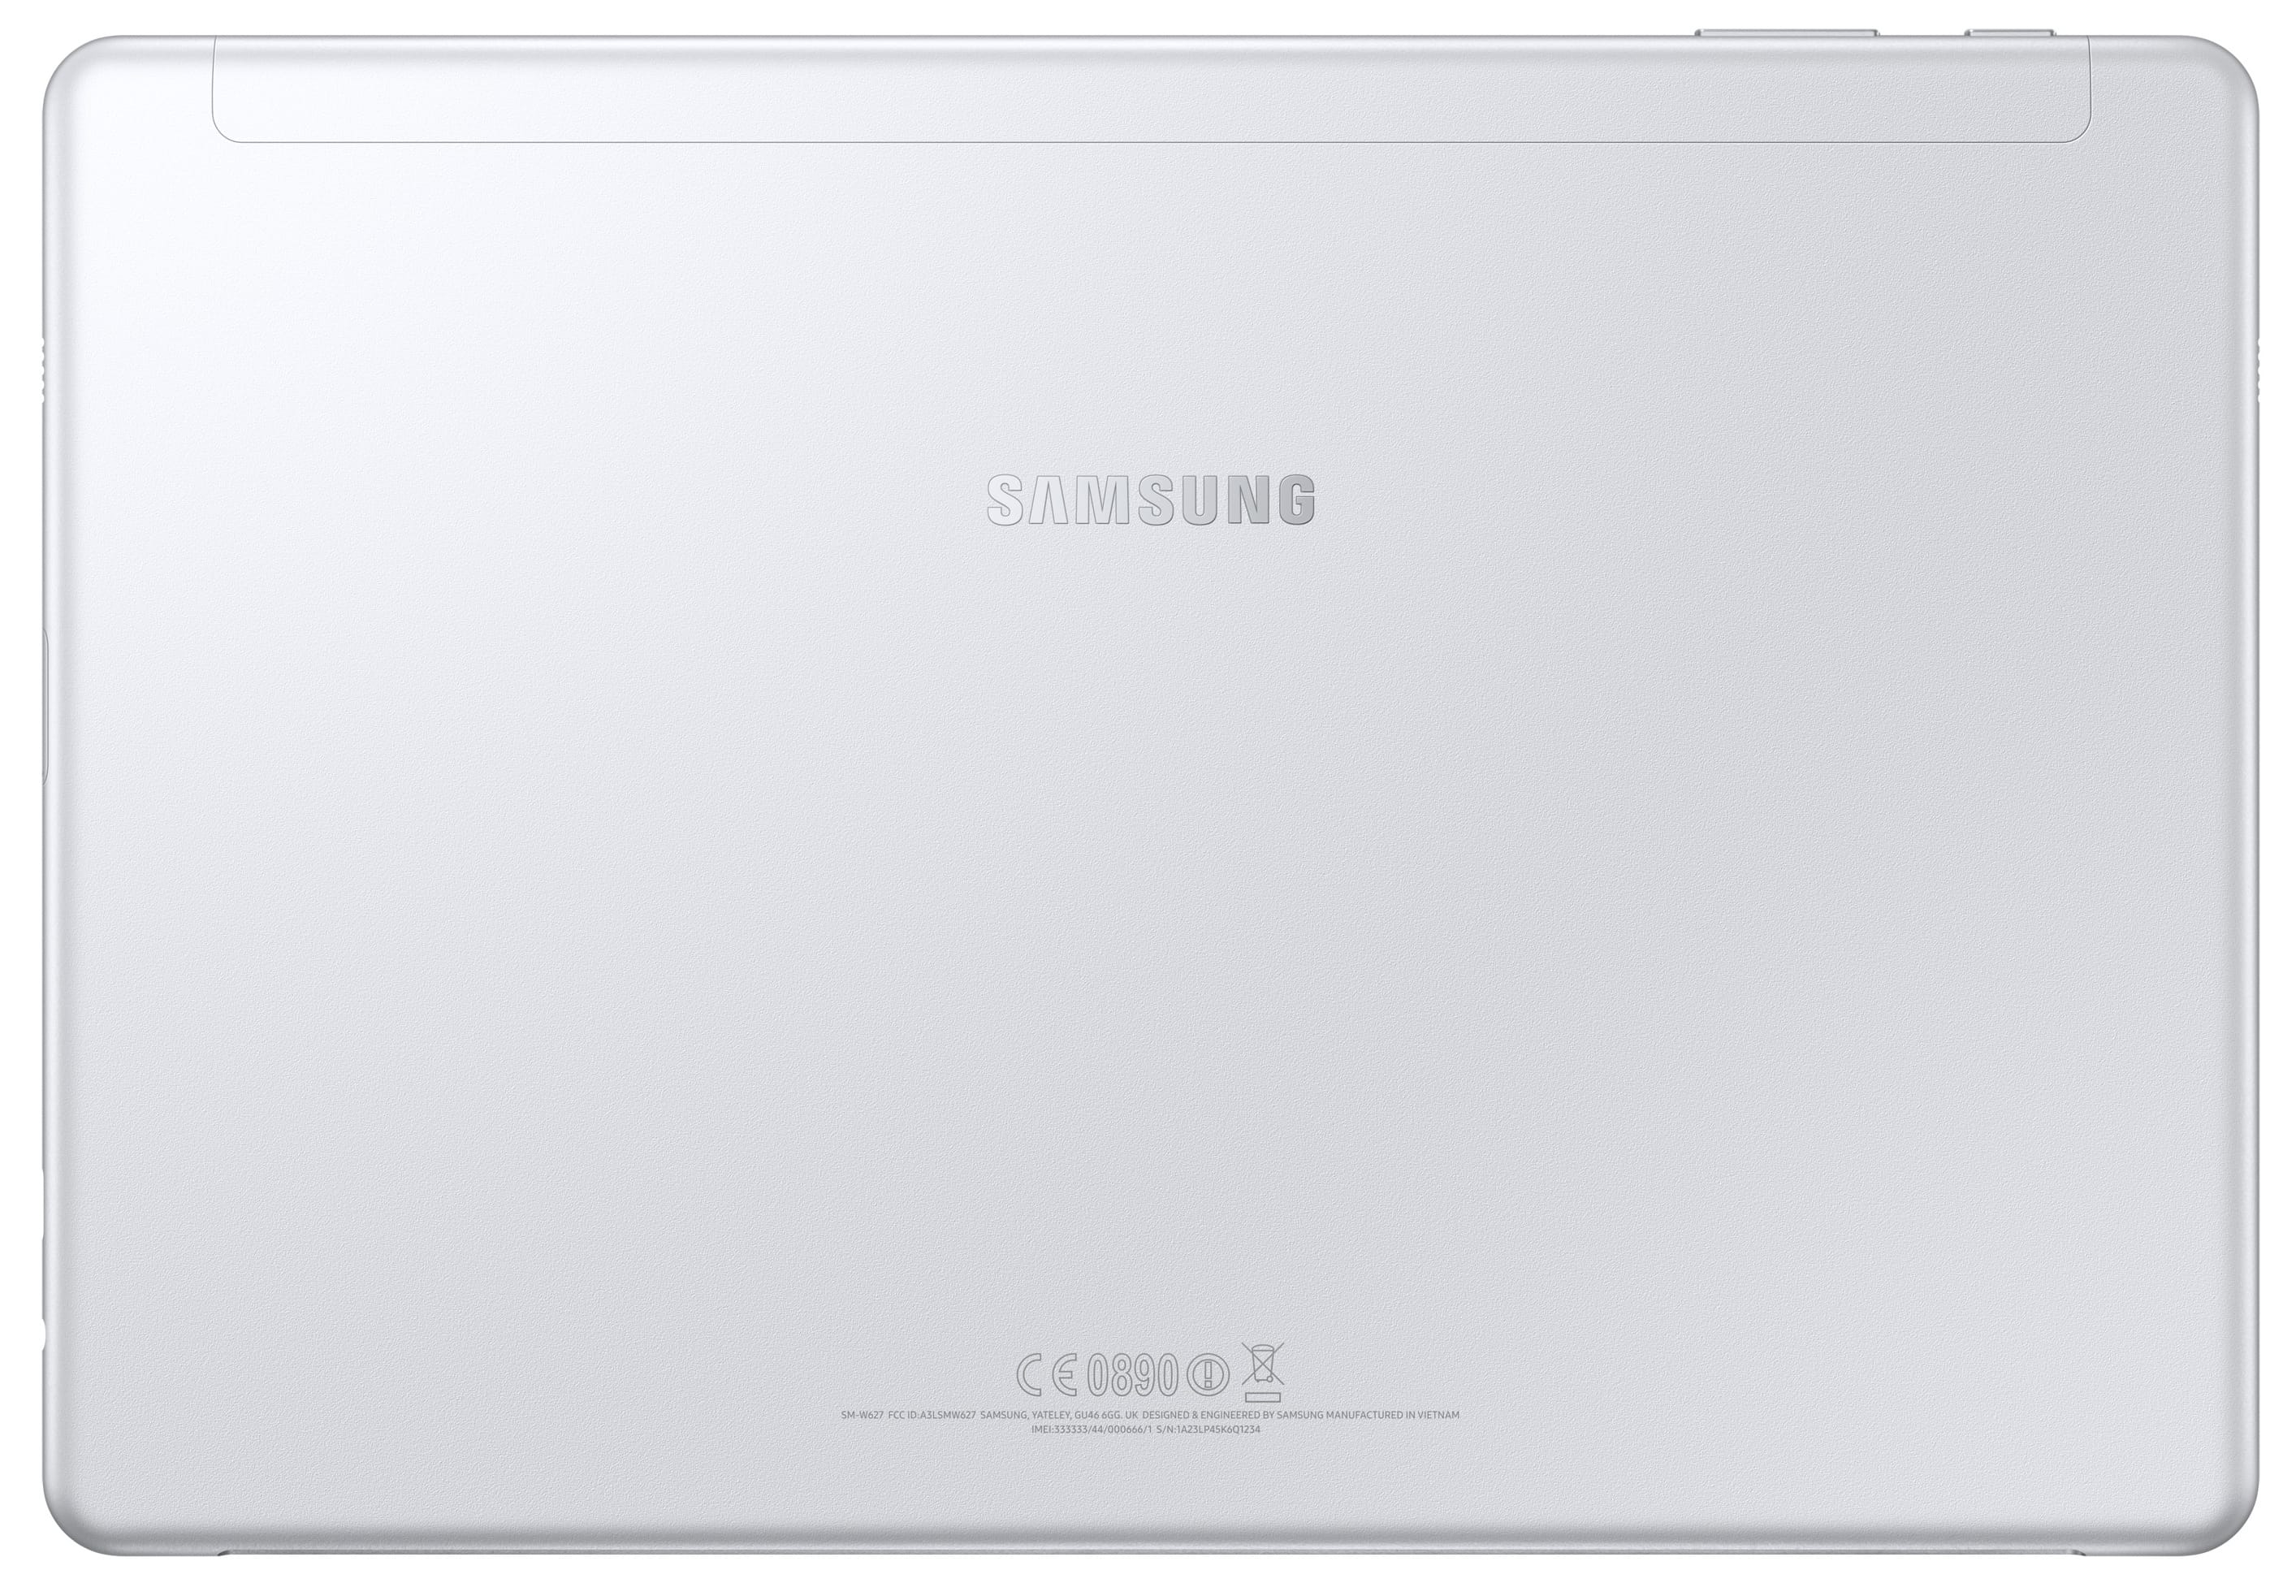 Samsung Galaxy Book Windows 10 3